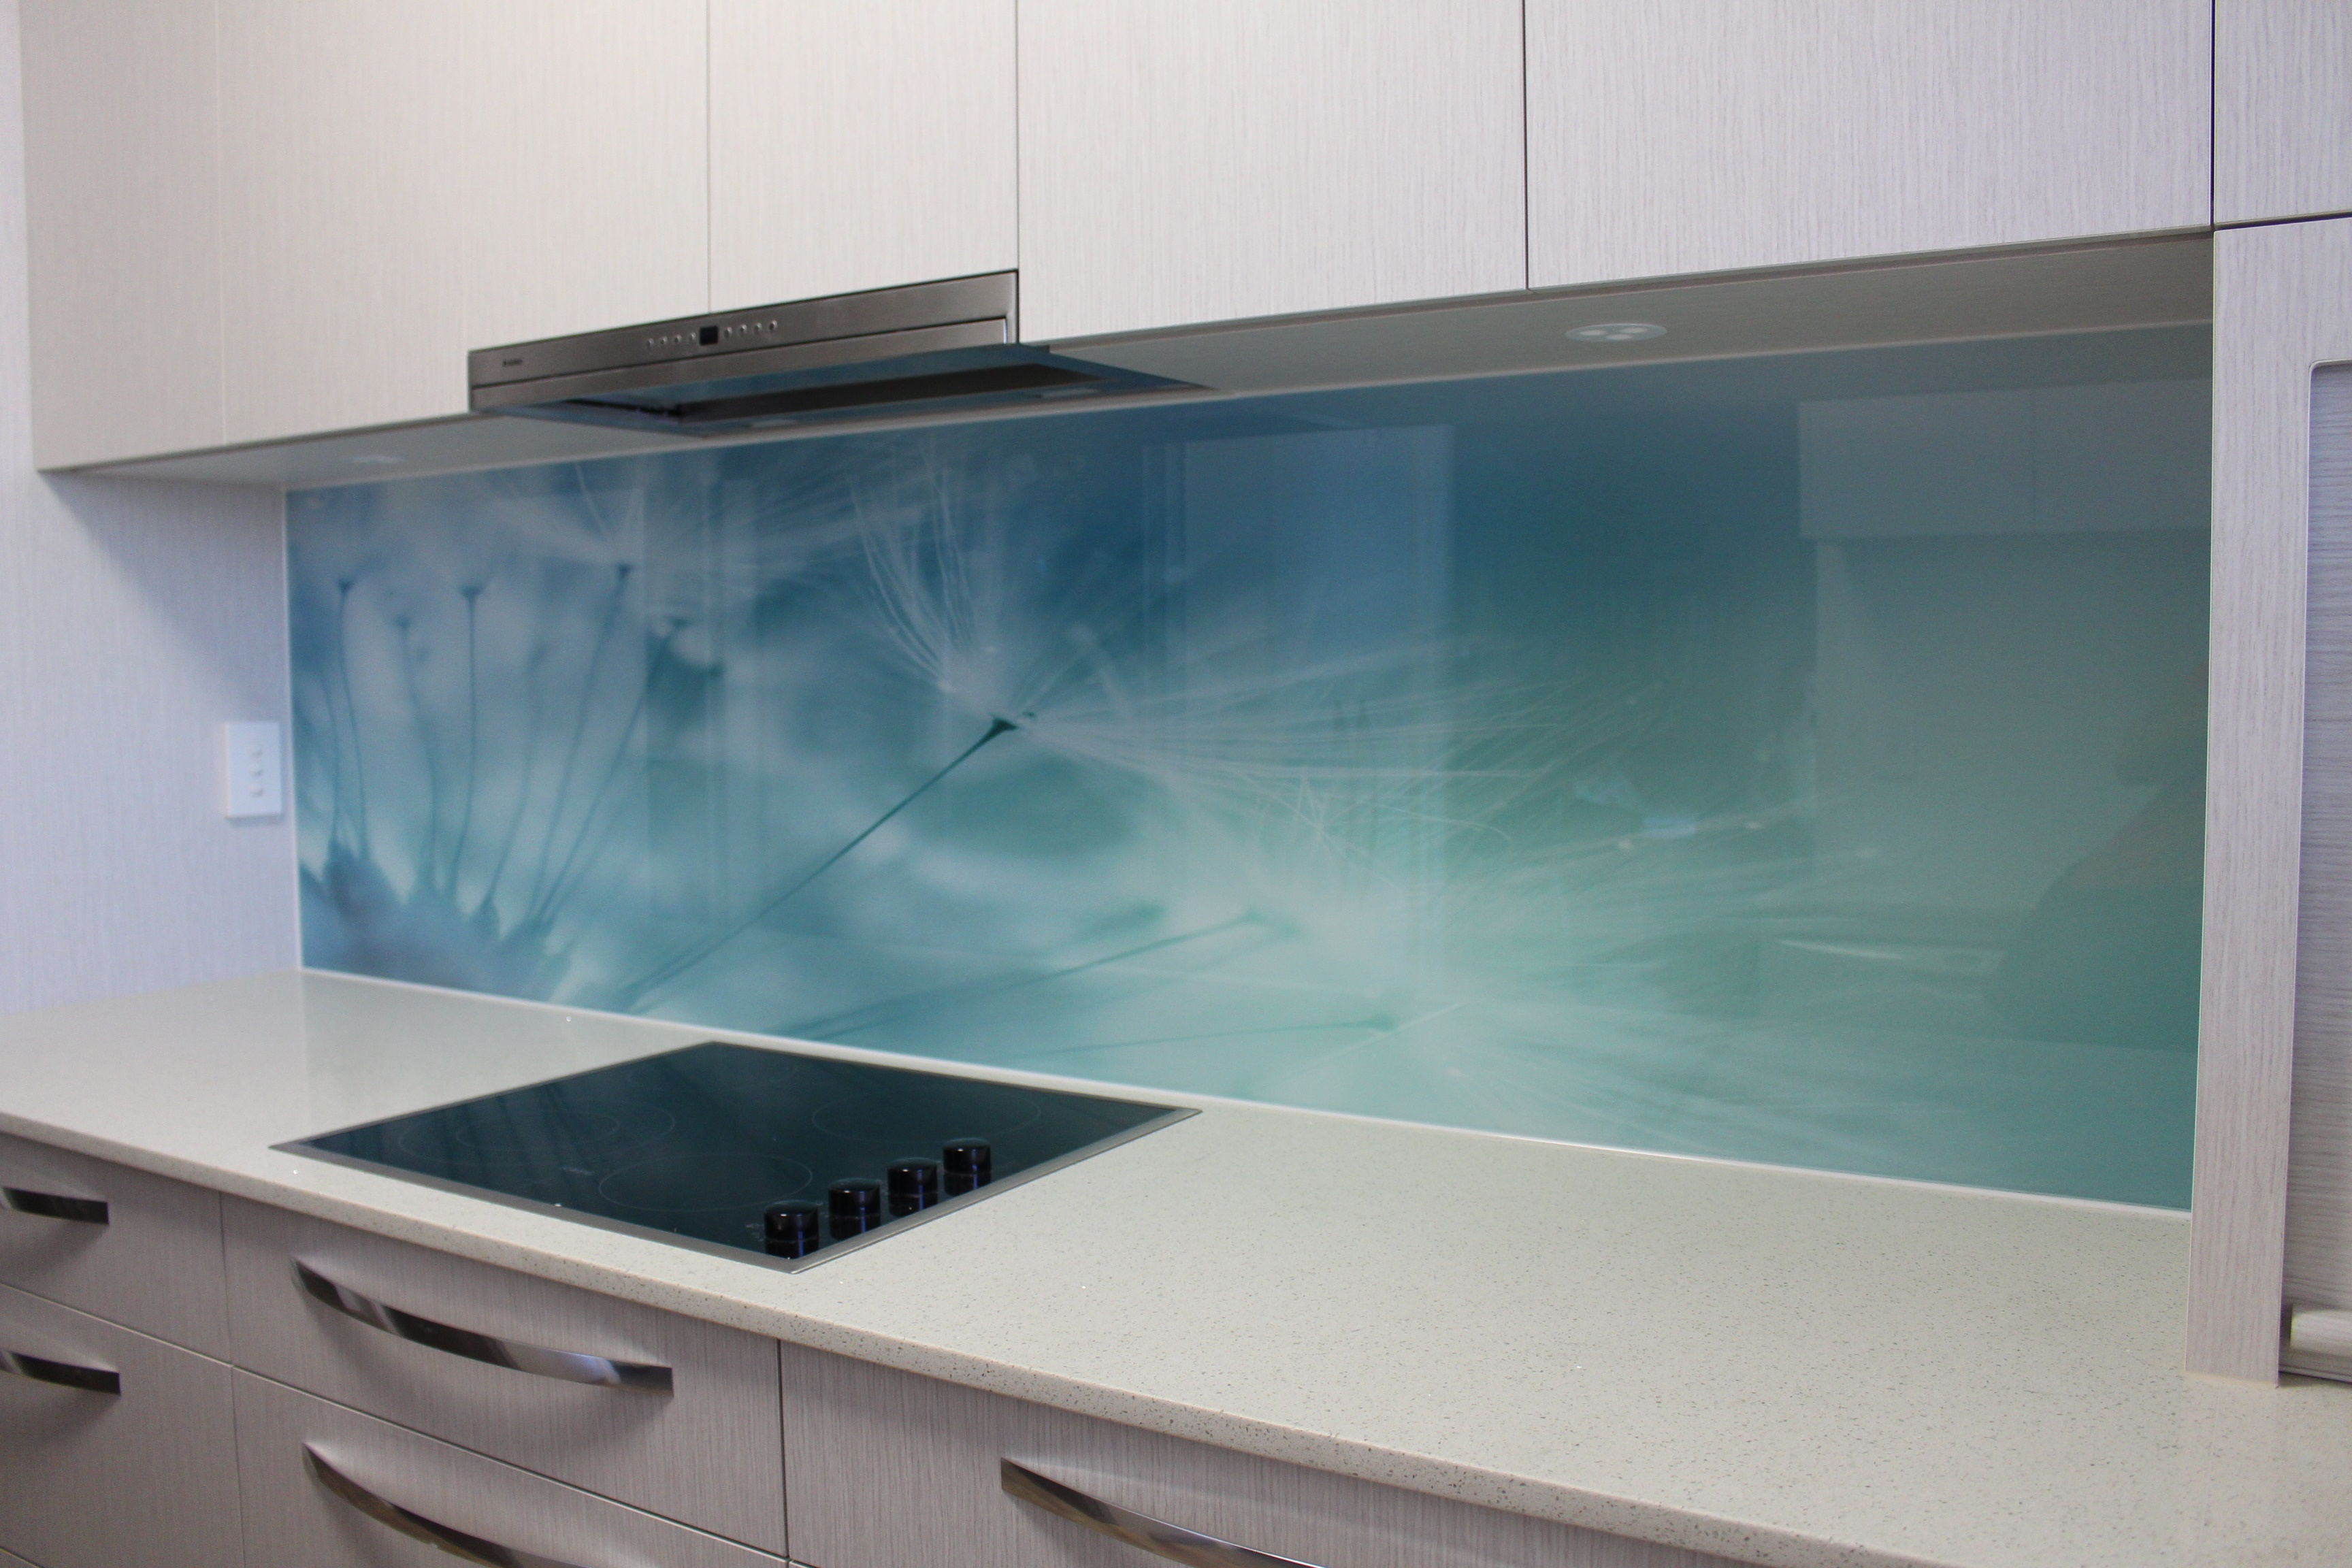 Stainless Steel Kitchen Backsplash Panels Custom Printed Glass Kitchen Splashbacks For Your Kitchen